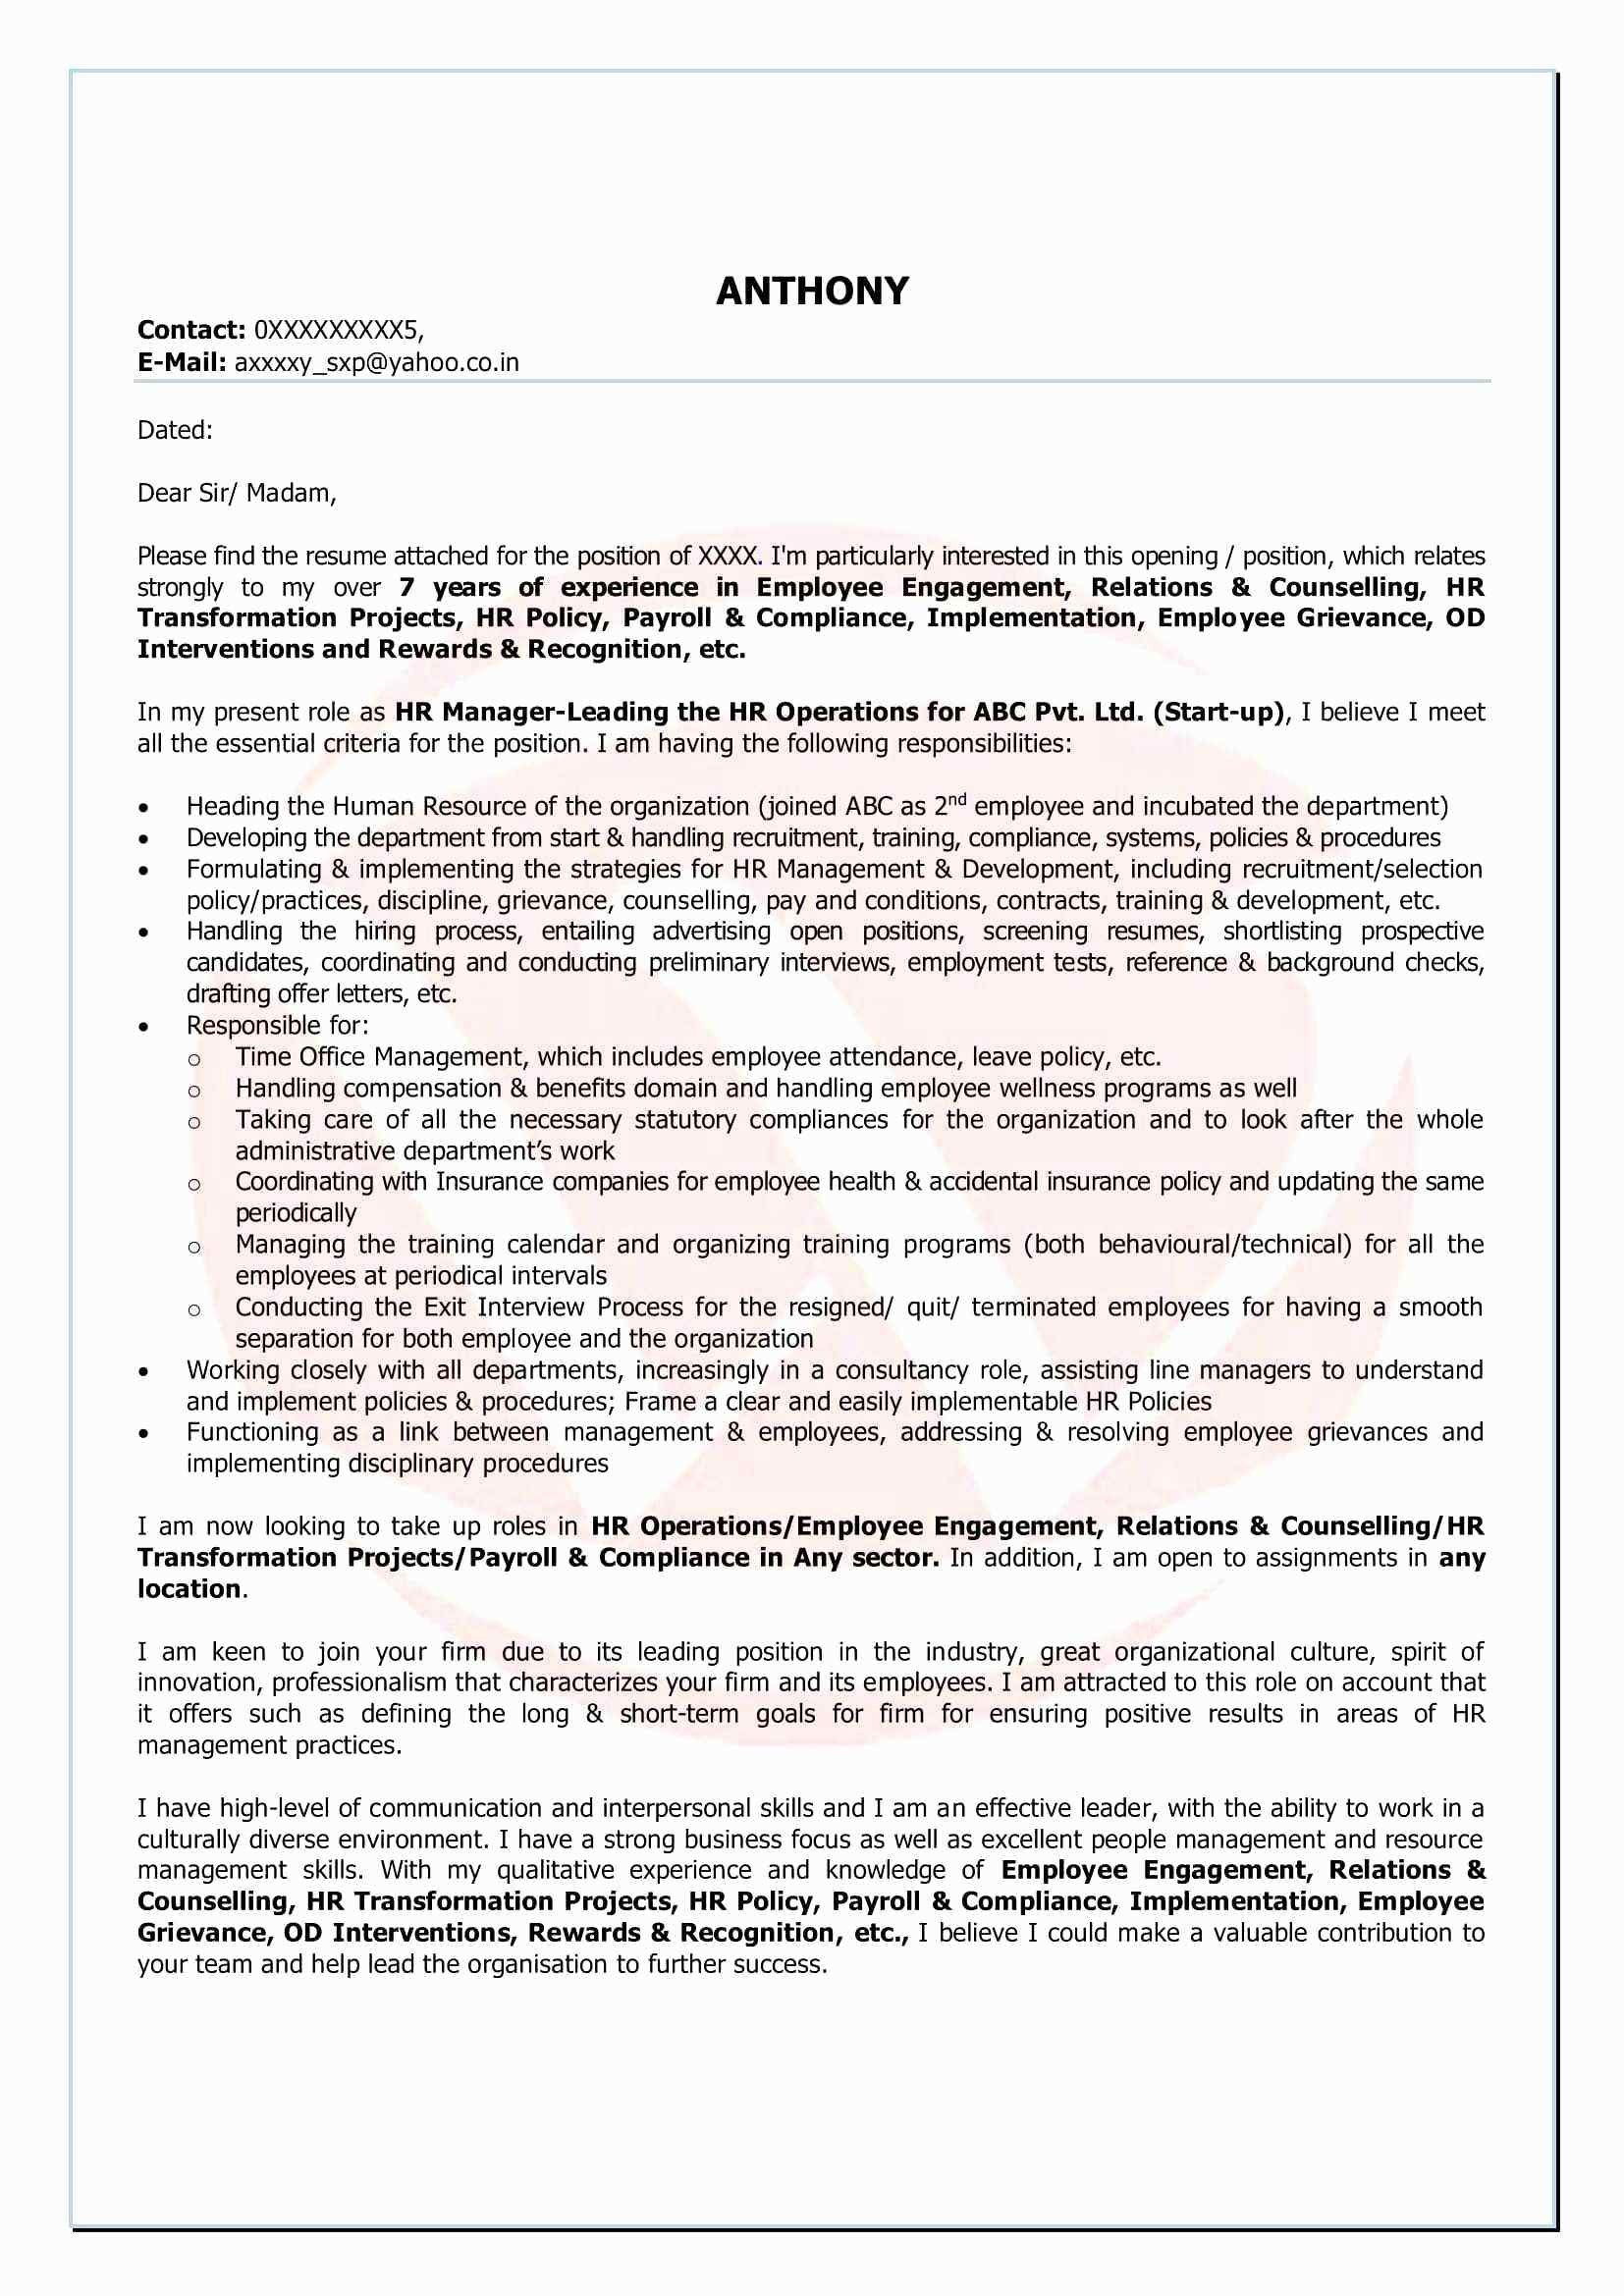 Sales Representative Duties and Responsibilities Resume - Inside Sales Rep Resume Save Sales Representative Cover Letter